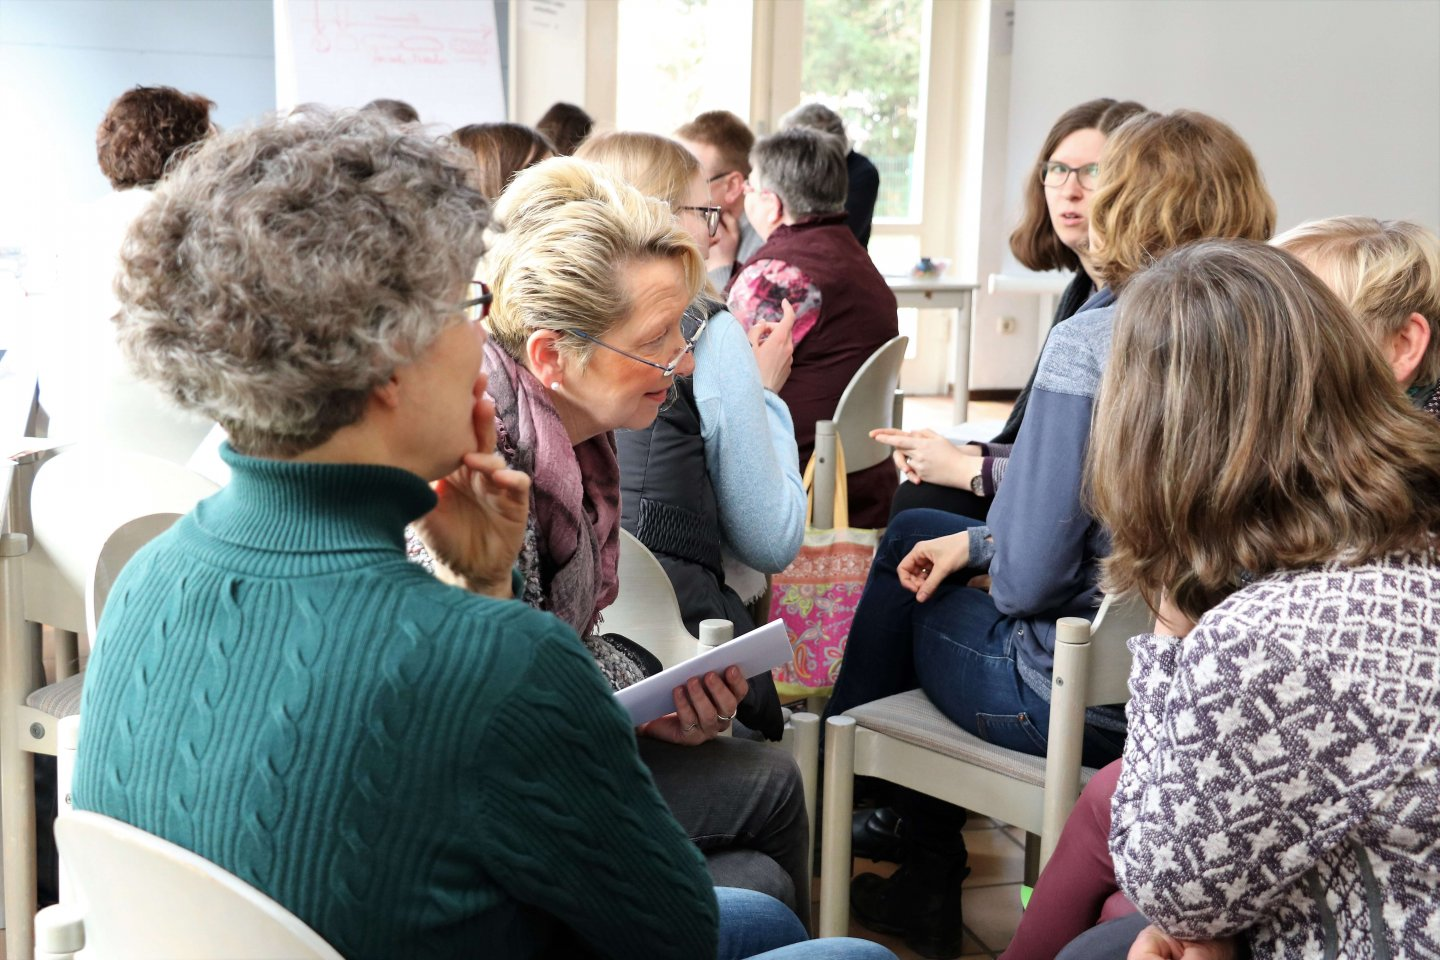 Mettingen Mission Possible on Tour Glauben Faszination wecken Christentum Diskussion Runde Frauen Figlhaus Wien Akademie für Dialog und Evangelisation